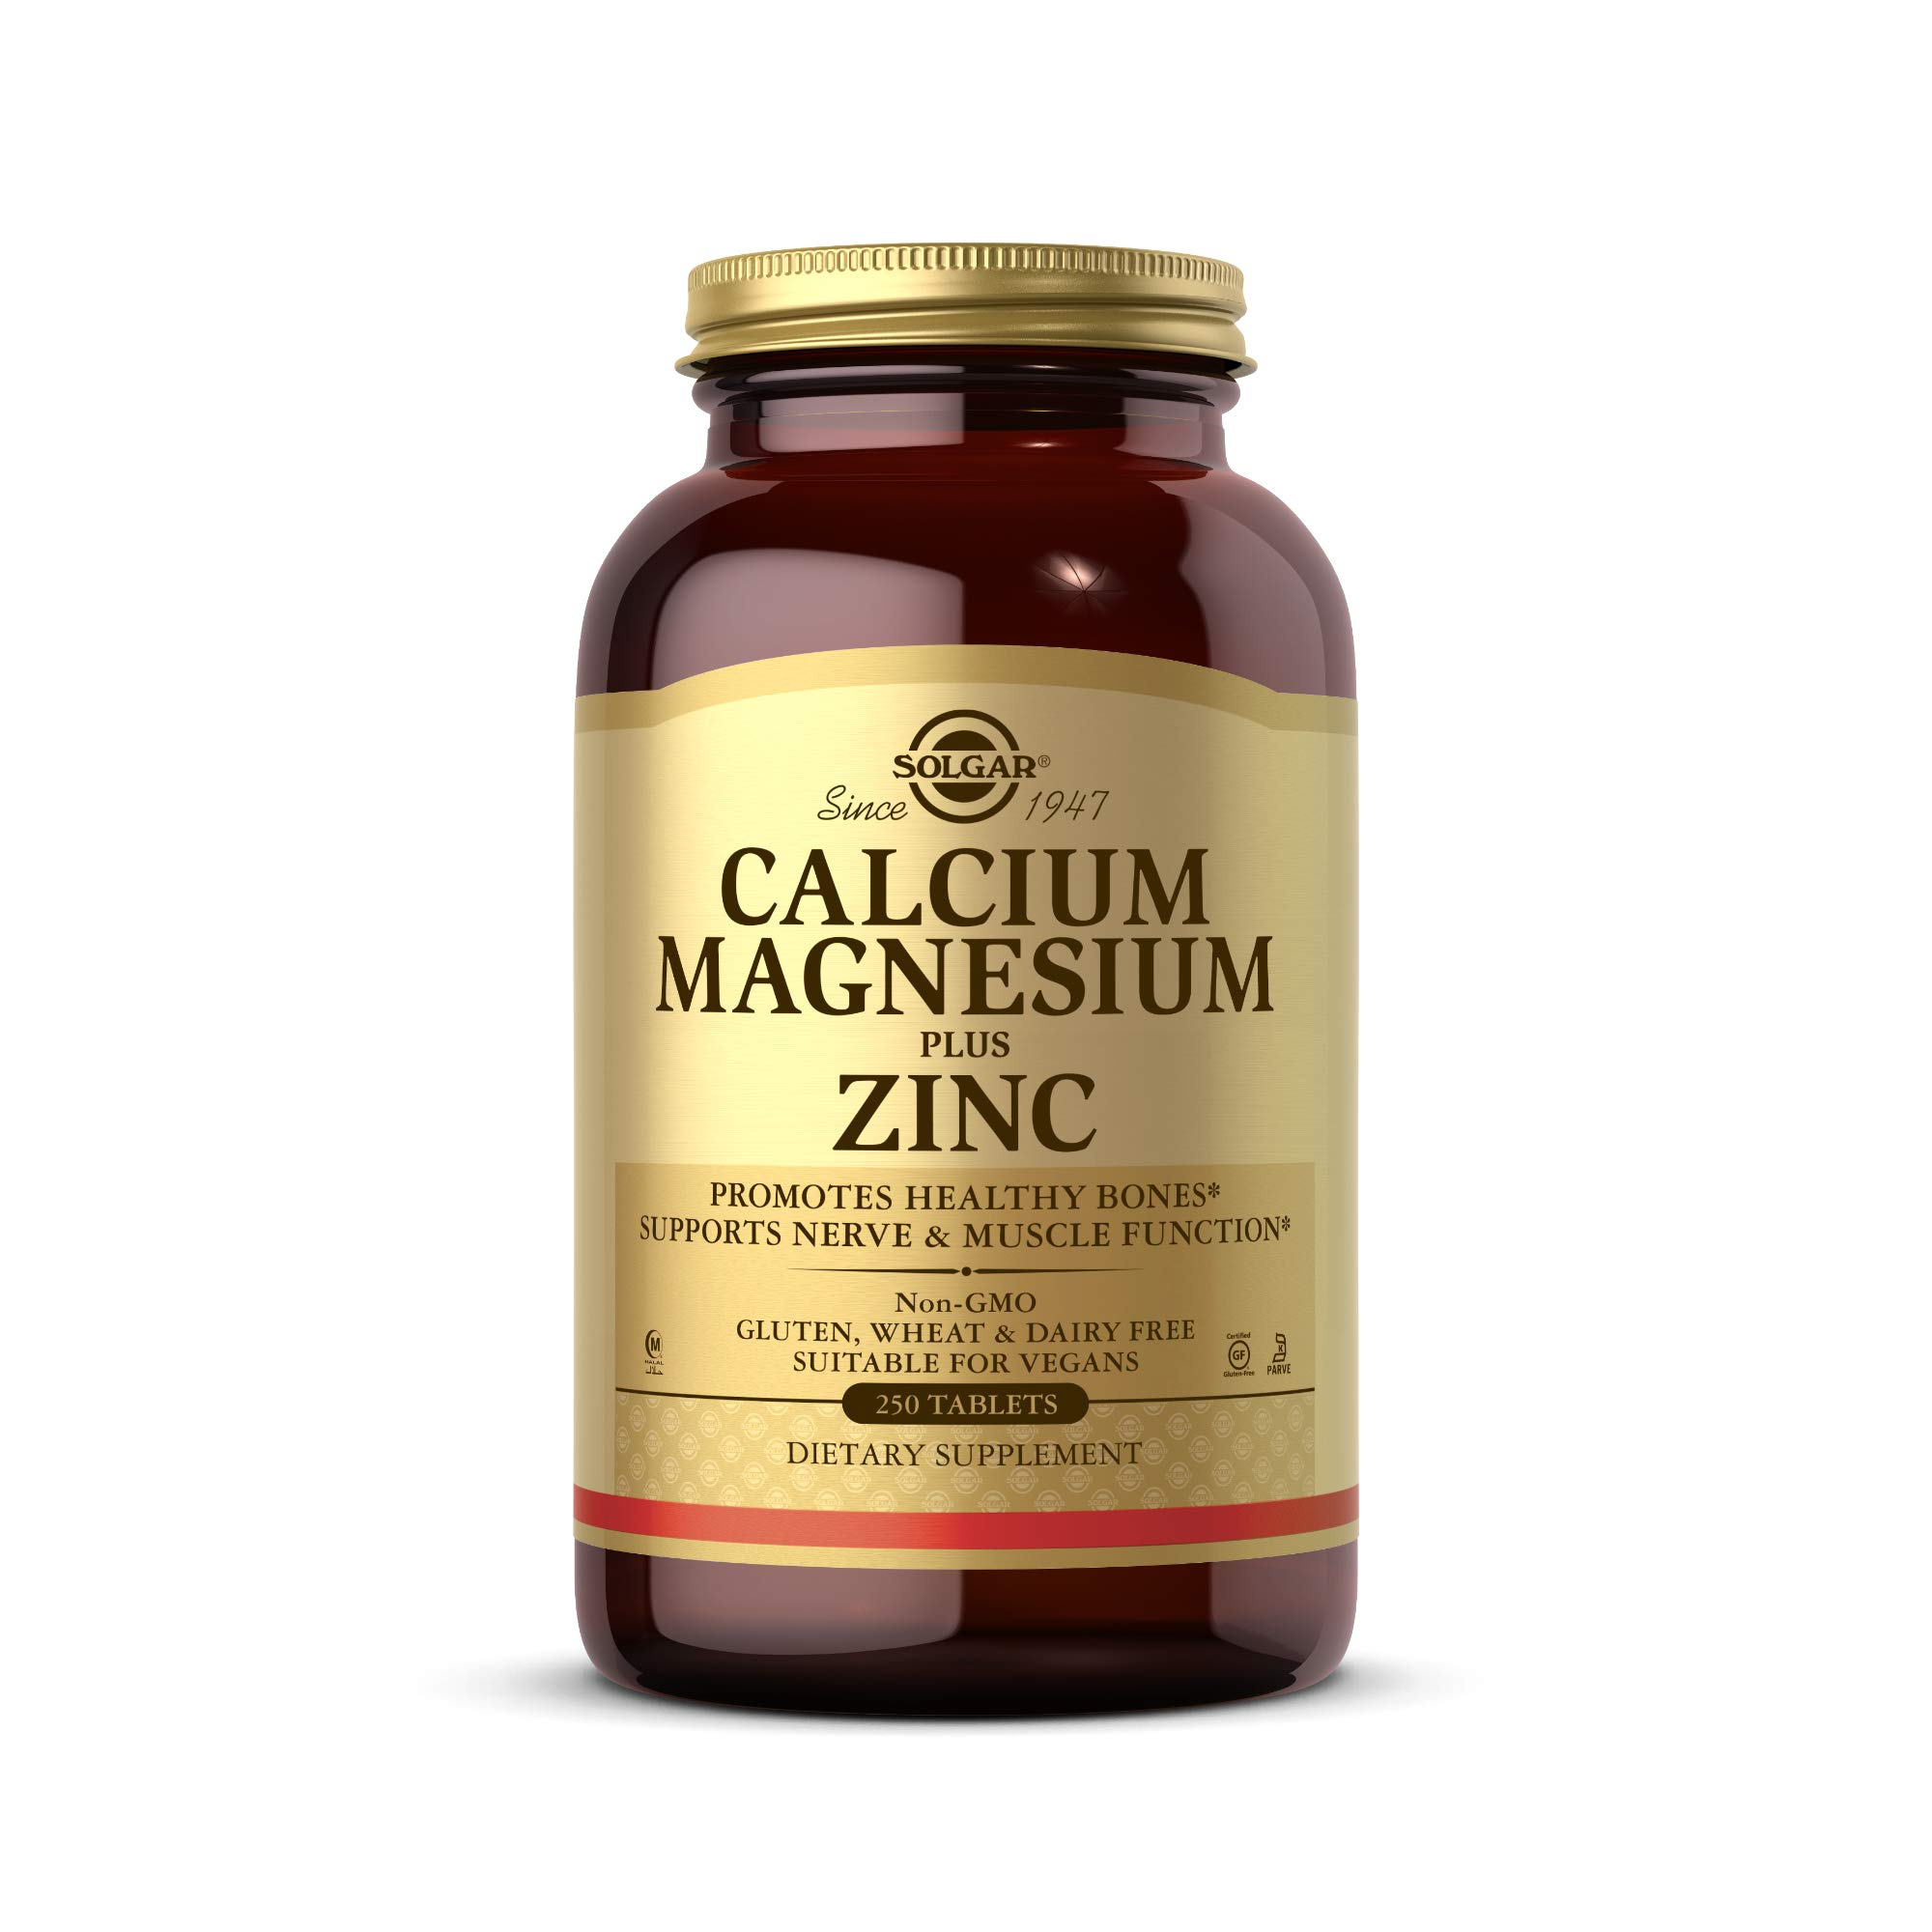 Solgar Calcium Magnesium Plus Zinc, 250 Tablets - Promotes Healthy Bones and Teeth - Supports Nerve & Muscle Function - Non GMO, Vegan, Gluten Free, Dairy Free, Kosher, Halal - 83 Servings